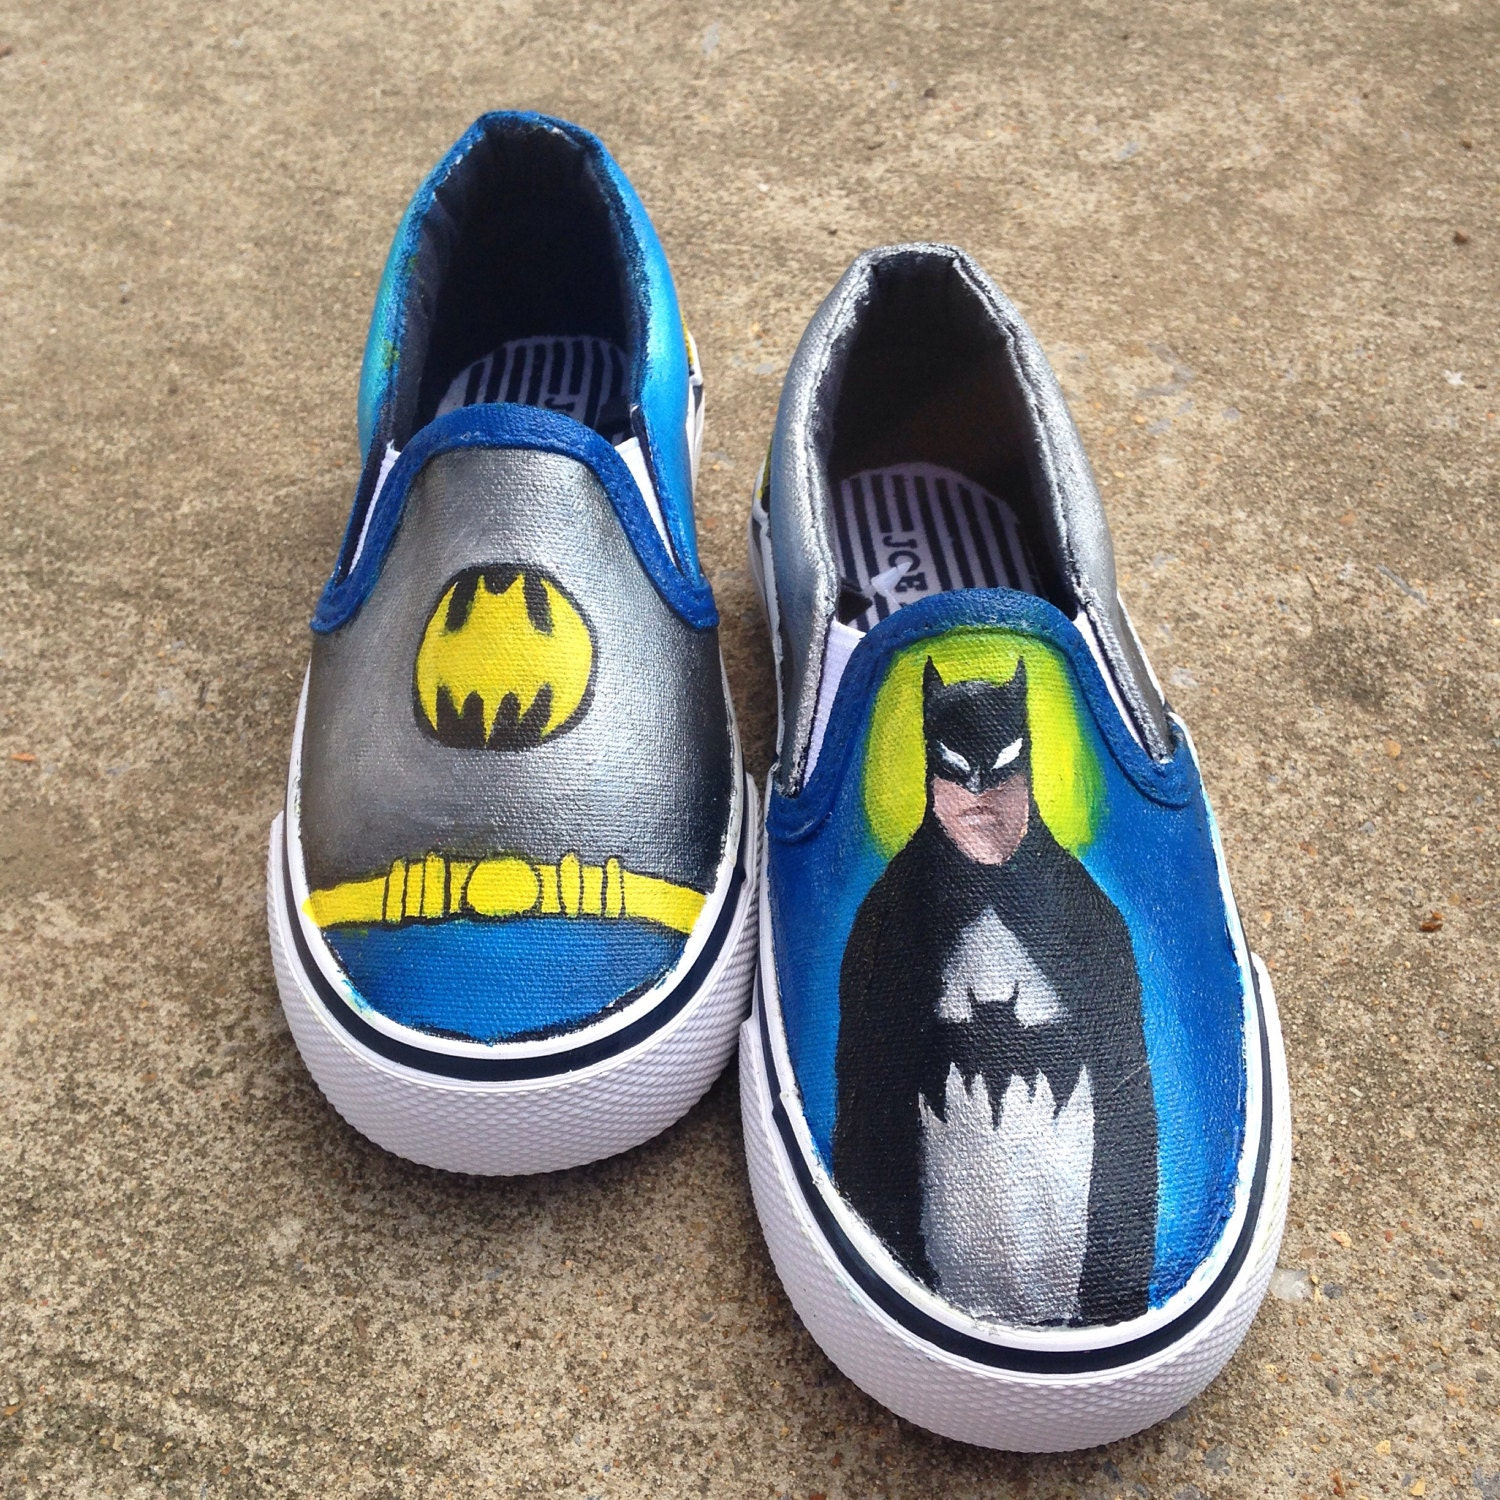 Man's/Woman's - Handpainted Batman Shoes bestseller - bestseller Shoes d64917